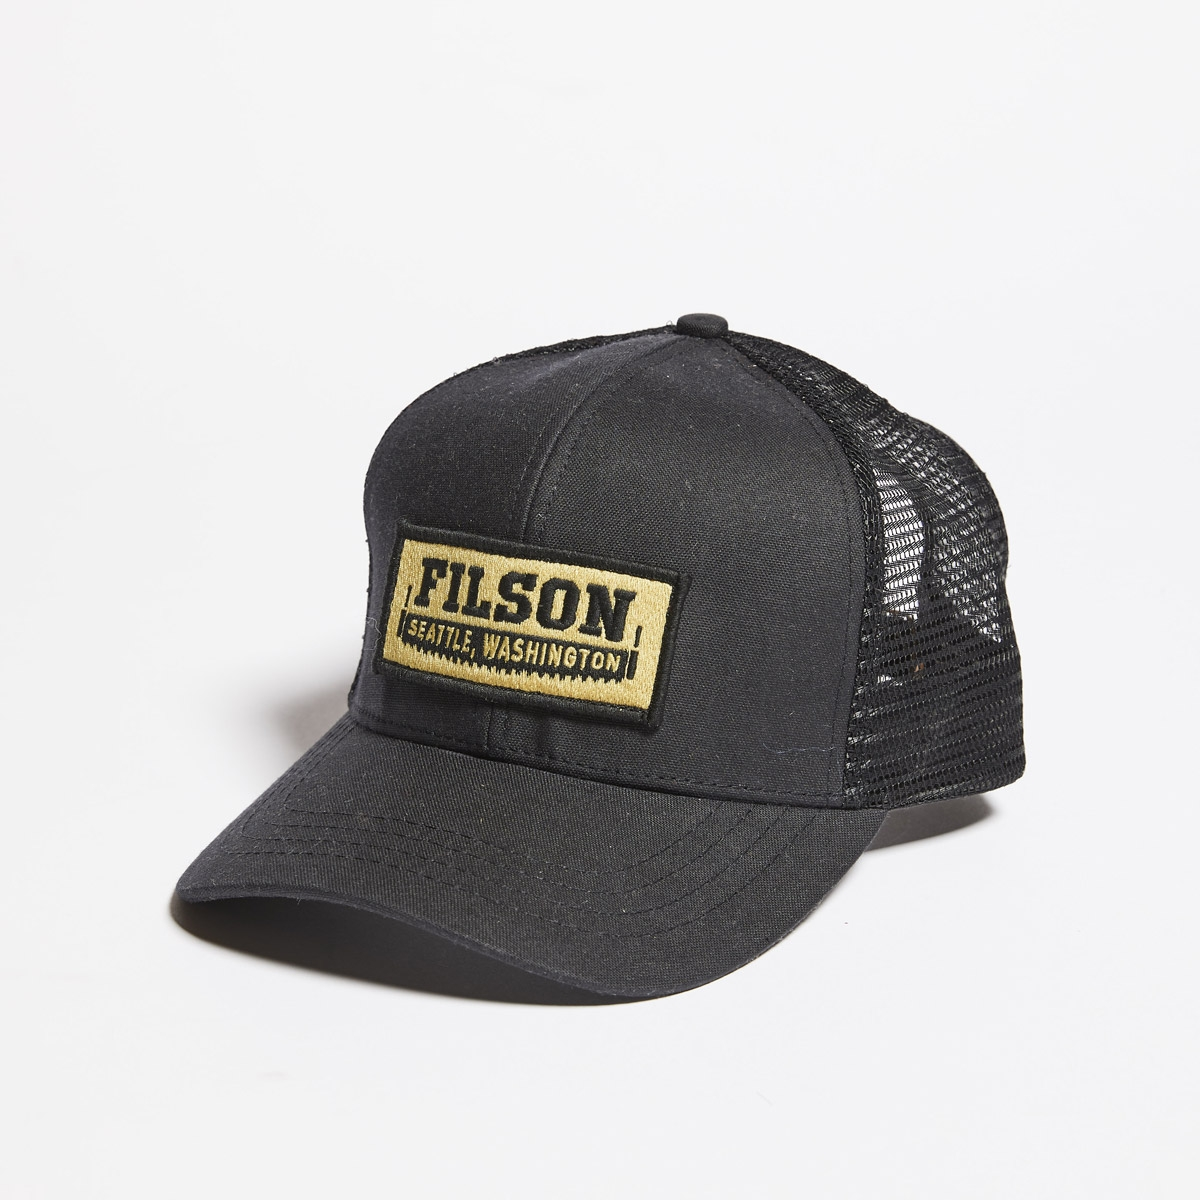 Filson Mesh Logger Cap 20157135-Black, durable cap with breathable sun protection